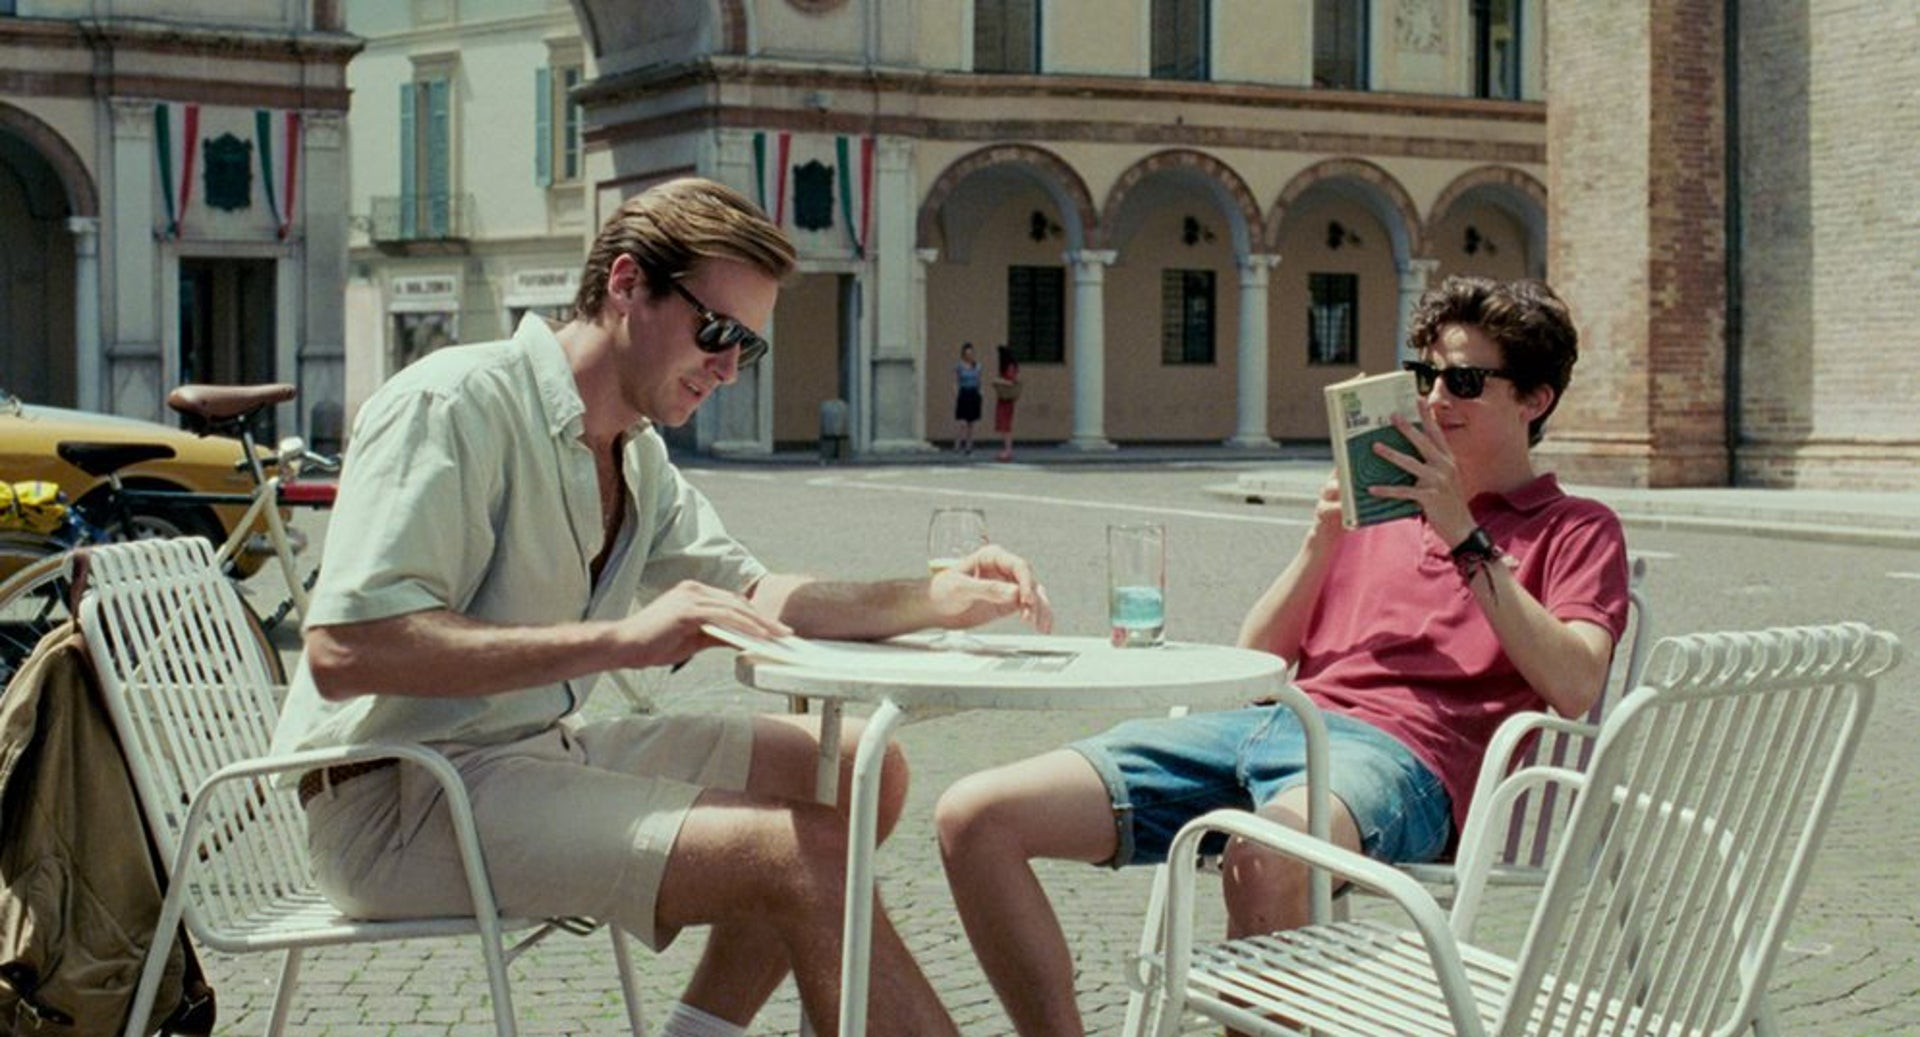 Timothée Chalamet and Armie Hammer in 'Call Me by Your Name.'